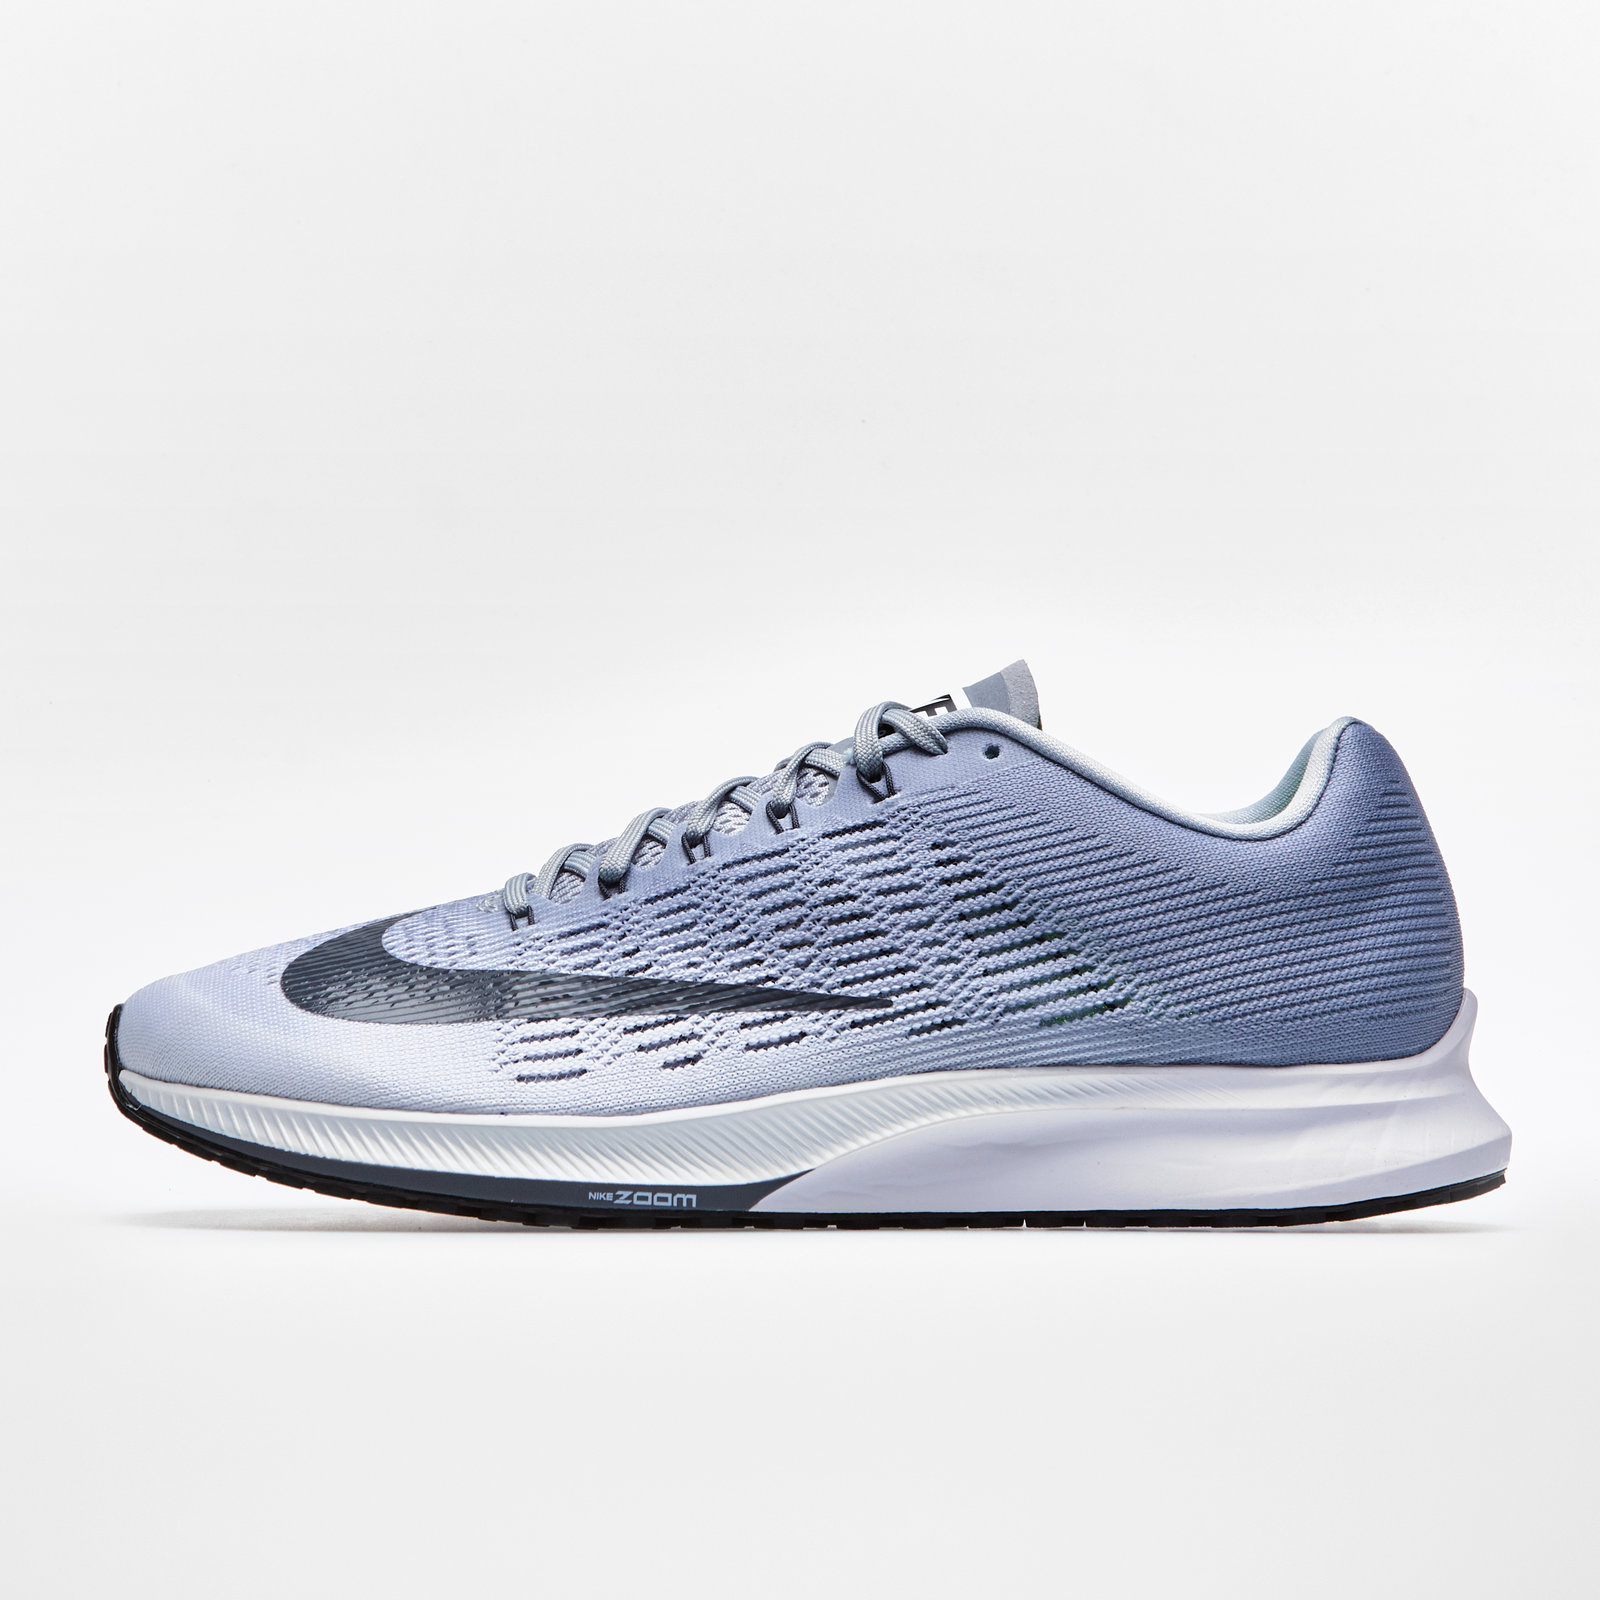 Image of Air Zoom Elite 9 Running Shoes